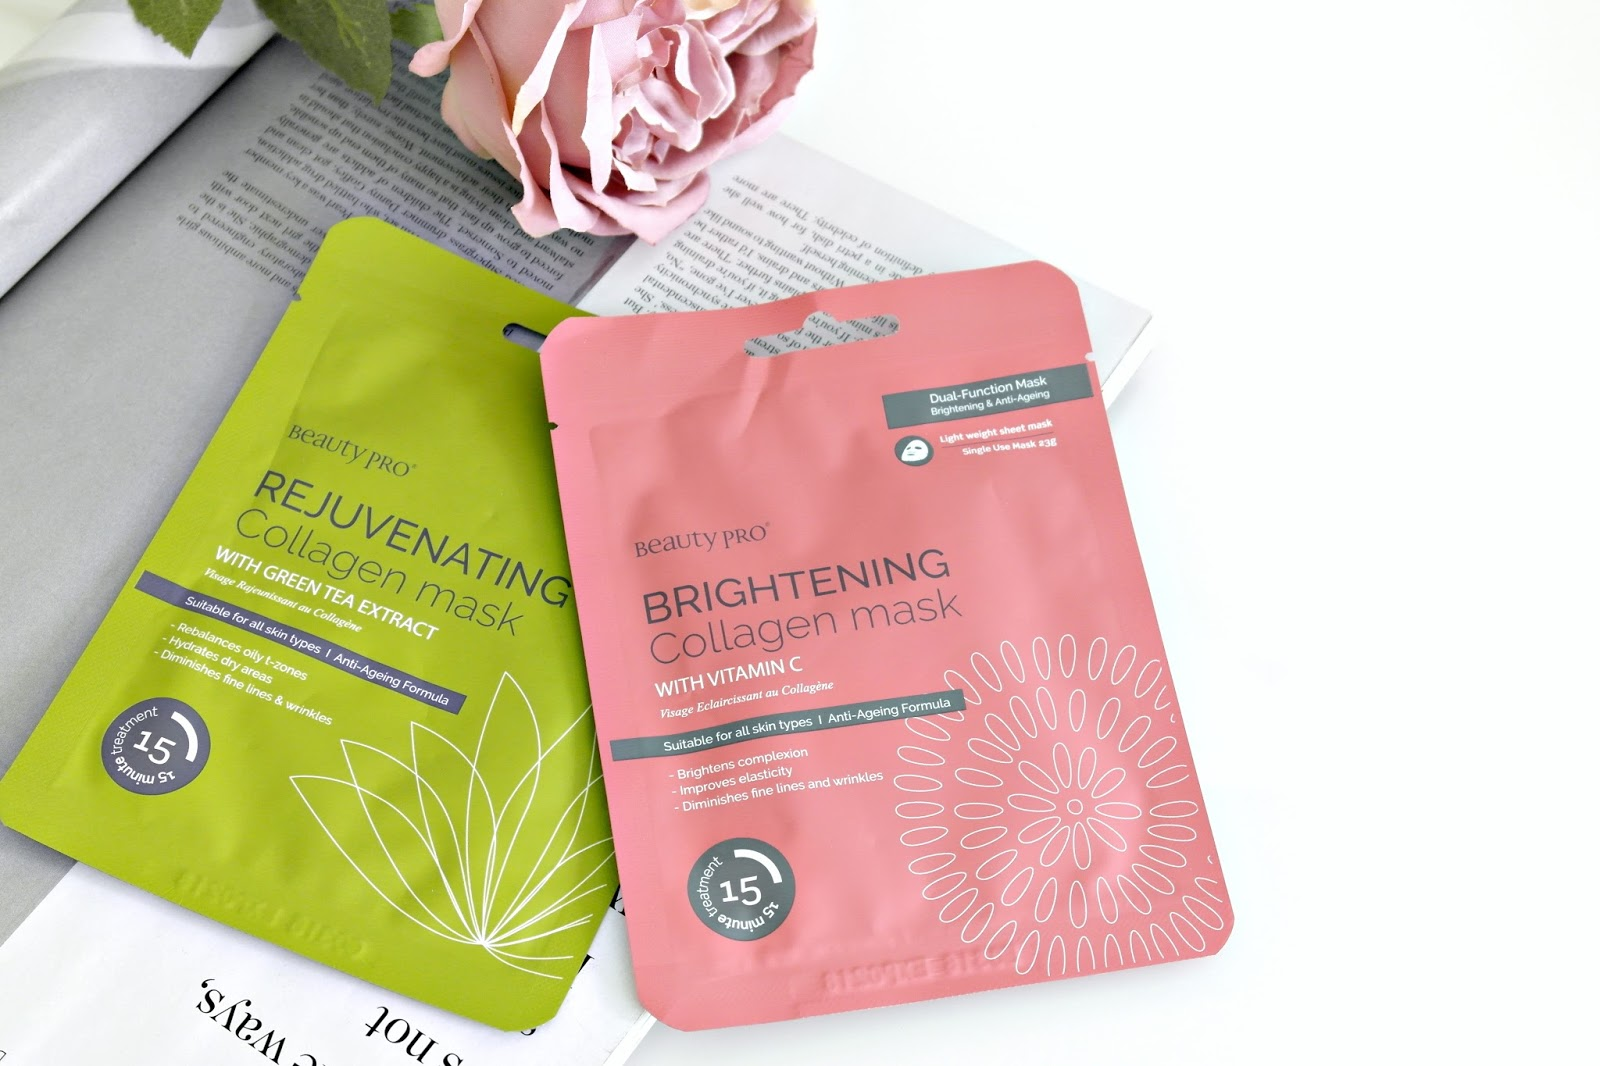 Beauty Pro collagen face masks